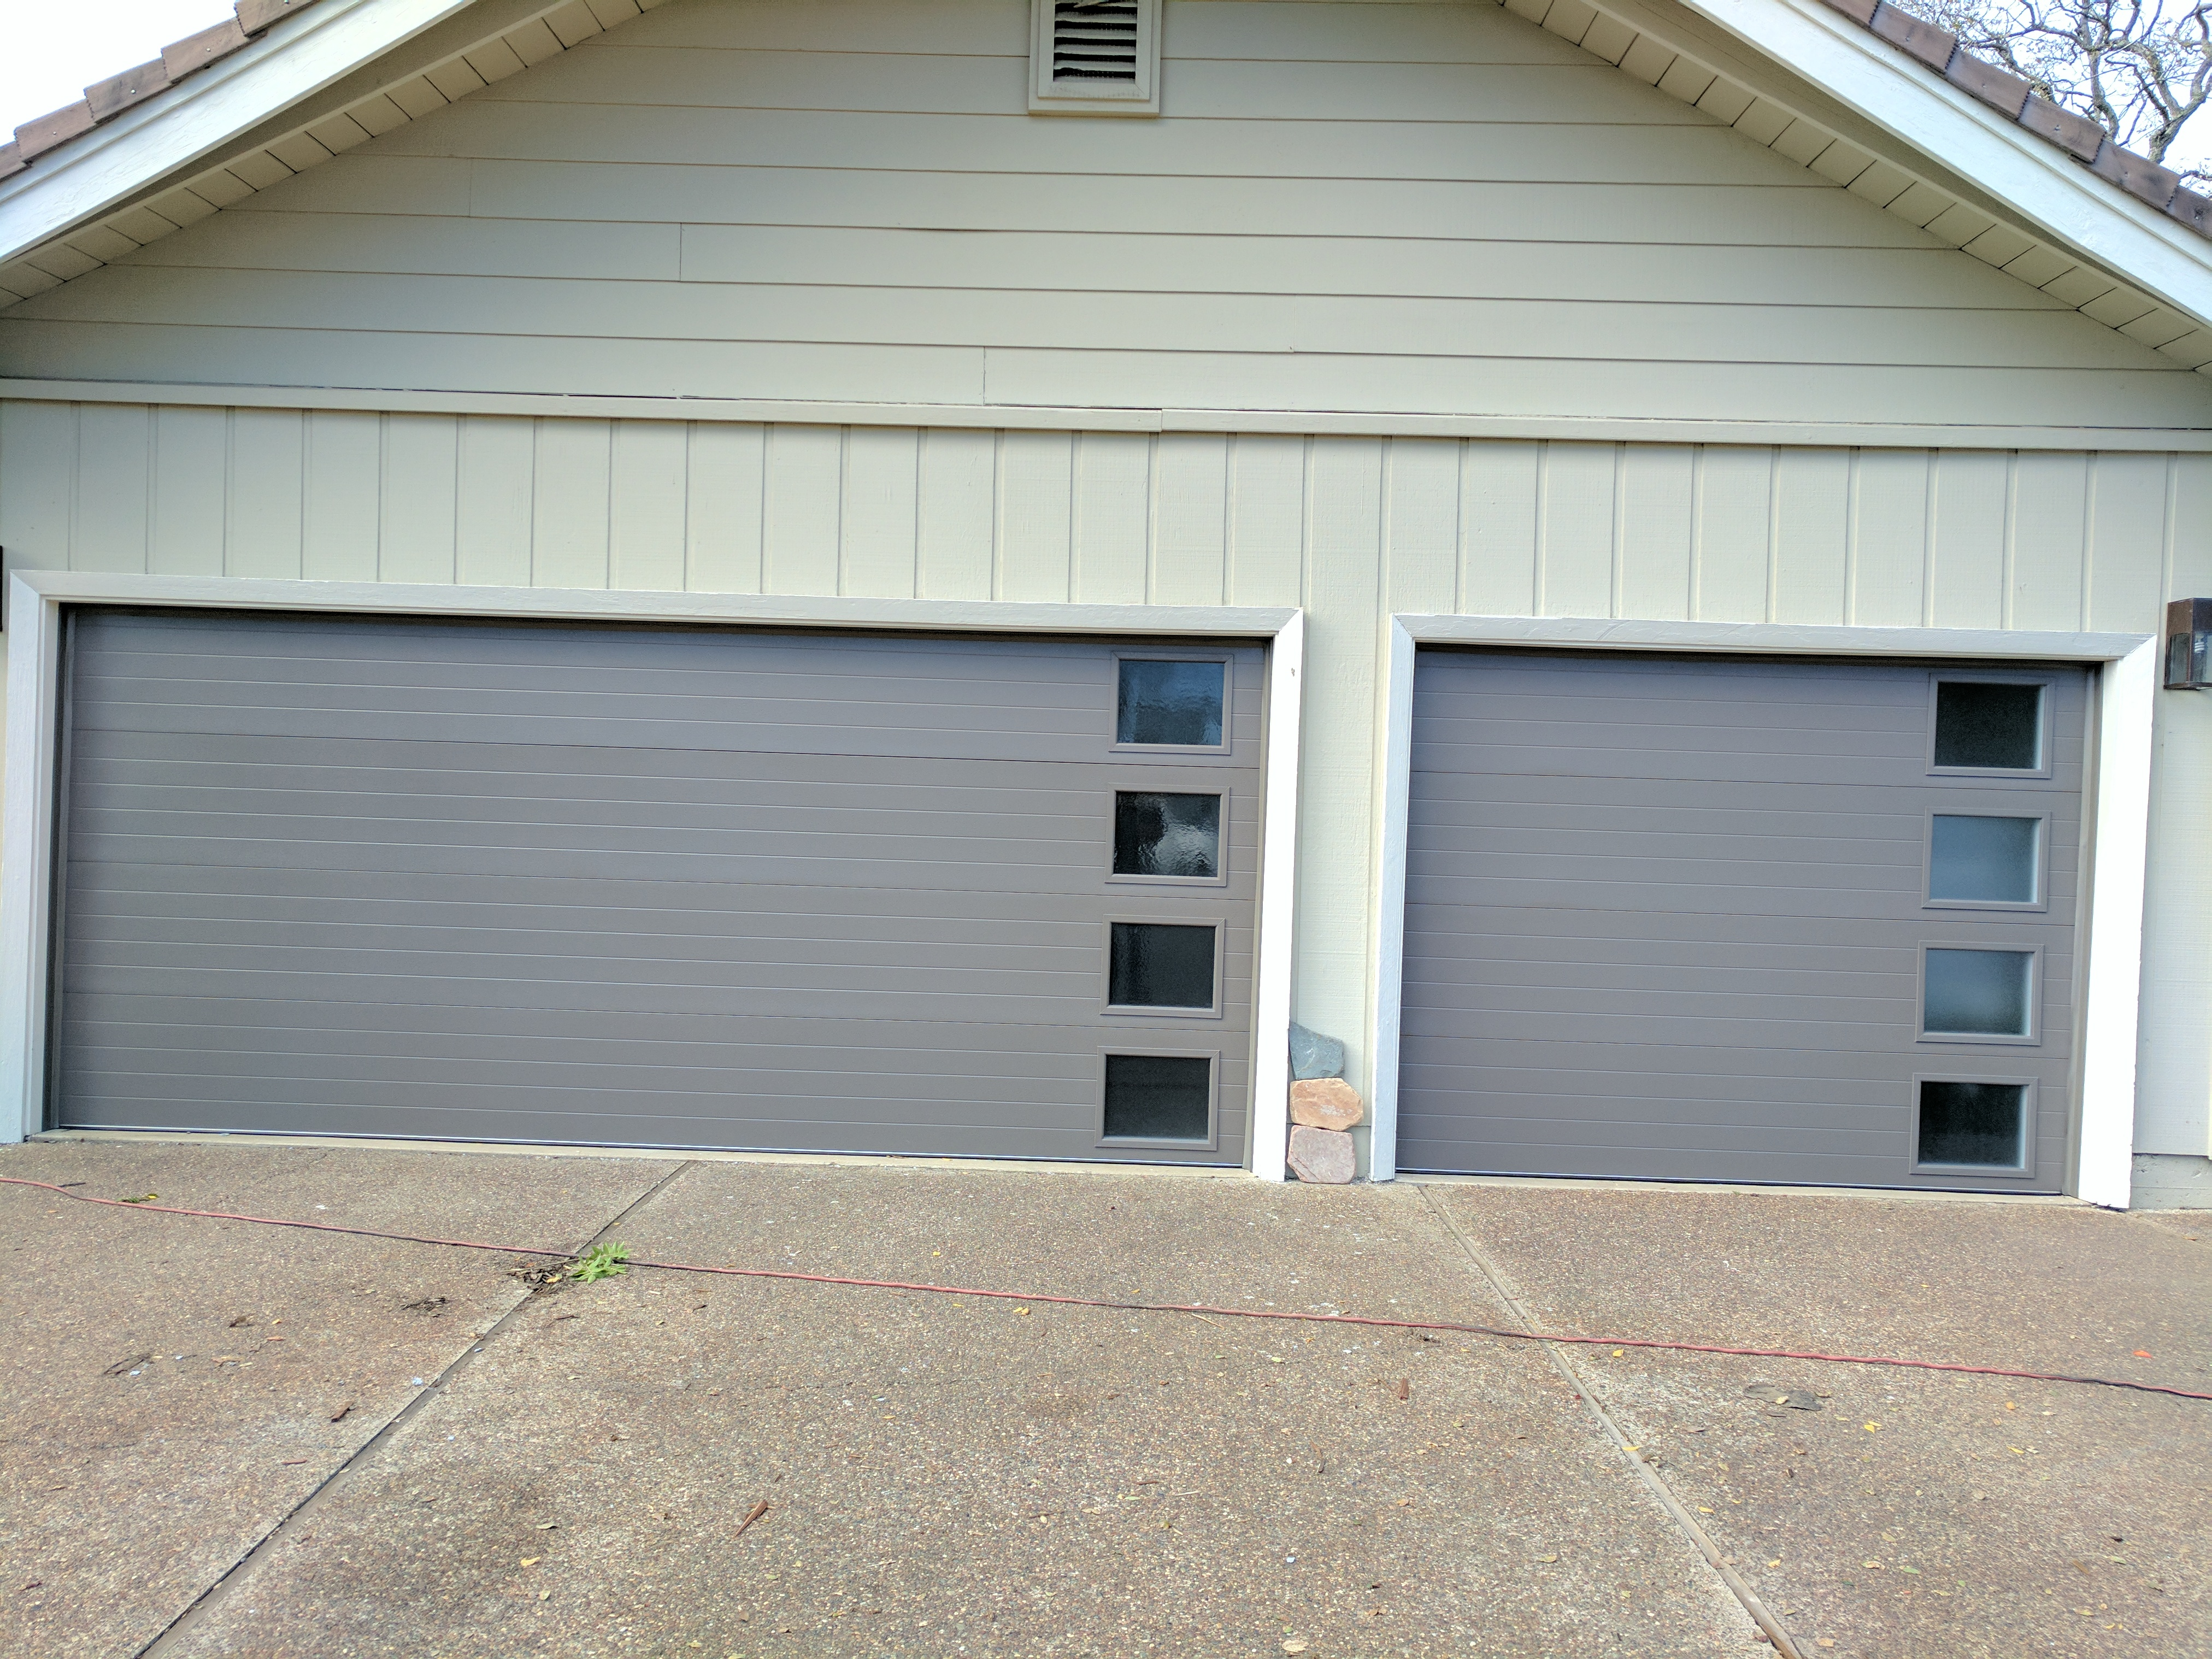 garage door with windows on the side